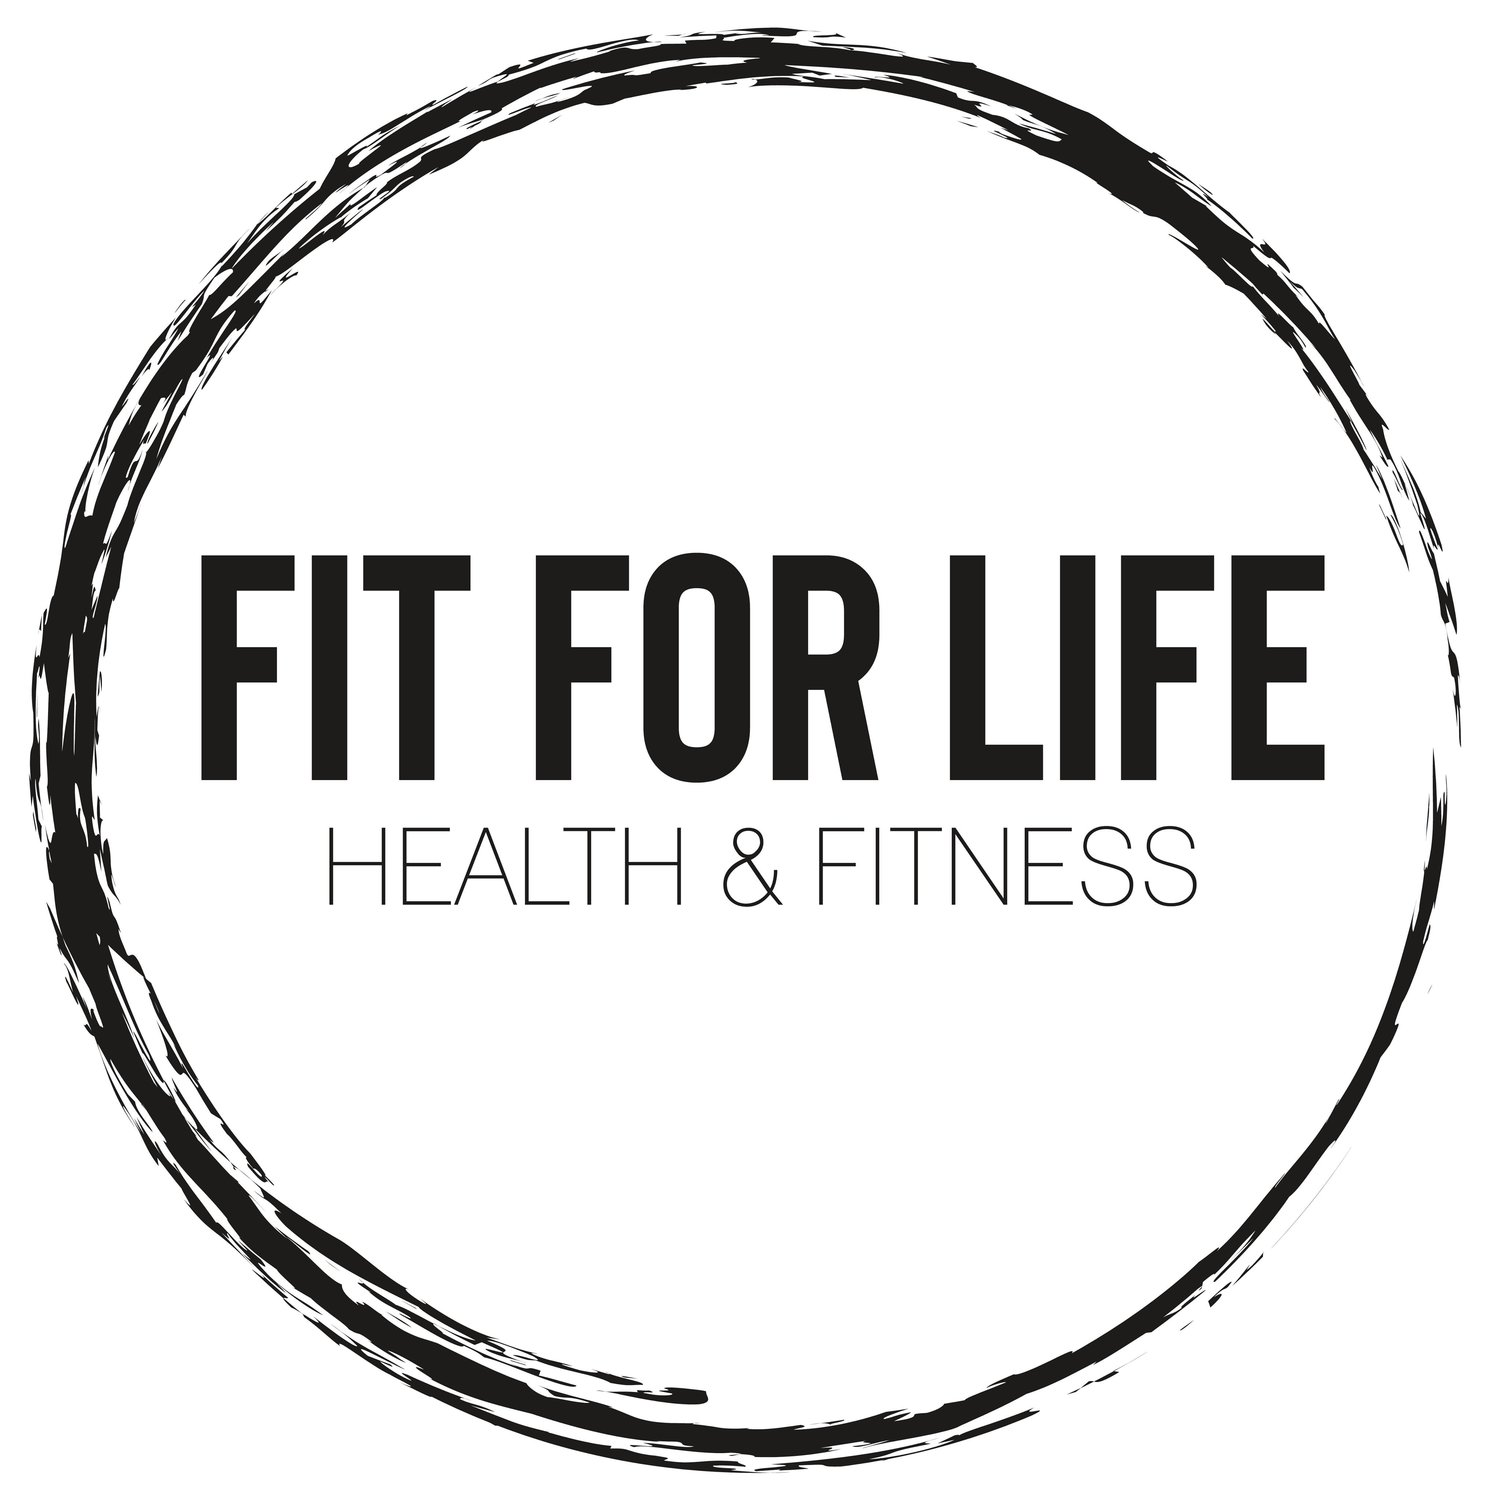 Fit For Life Health & Fitness